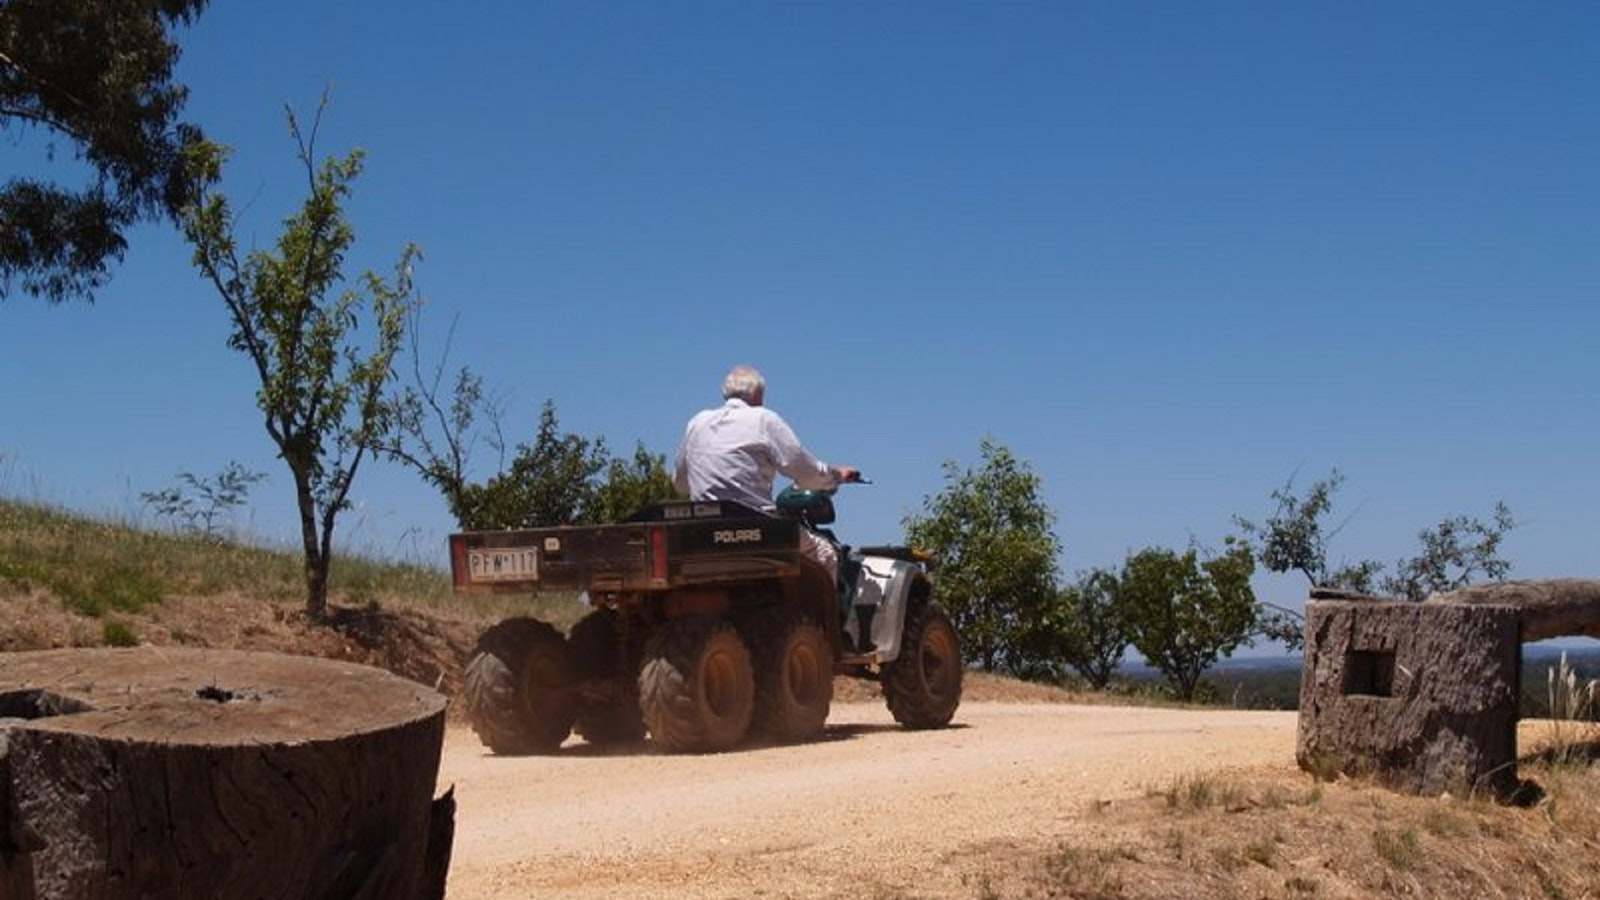 Winemaker on quadbike off to work